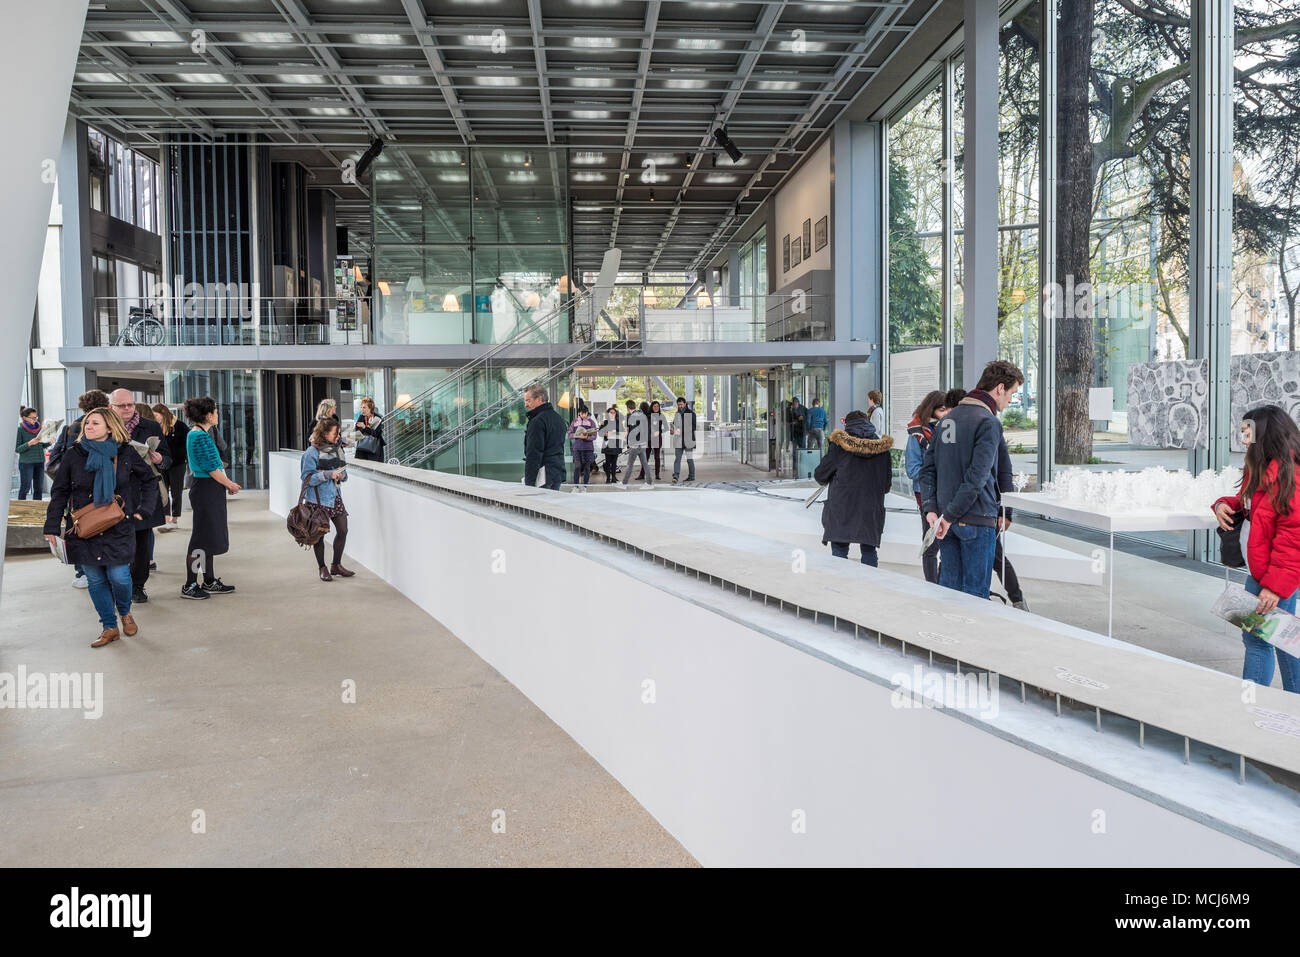 France, Paris - 5 April 2018: Fondation Cartier pour l'art contemporain designed by French architect Jean Nouvel - Junya Ishigami - Freeing architectu Stock Photo